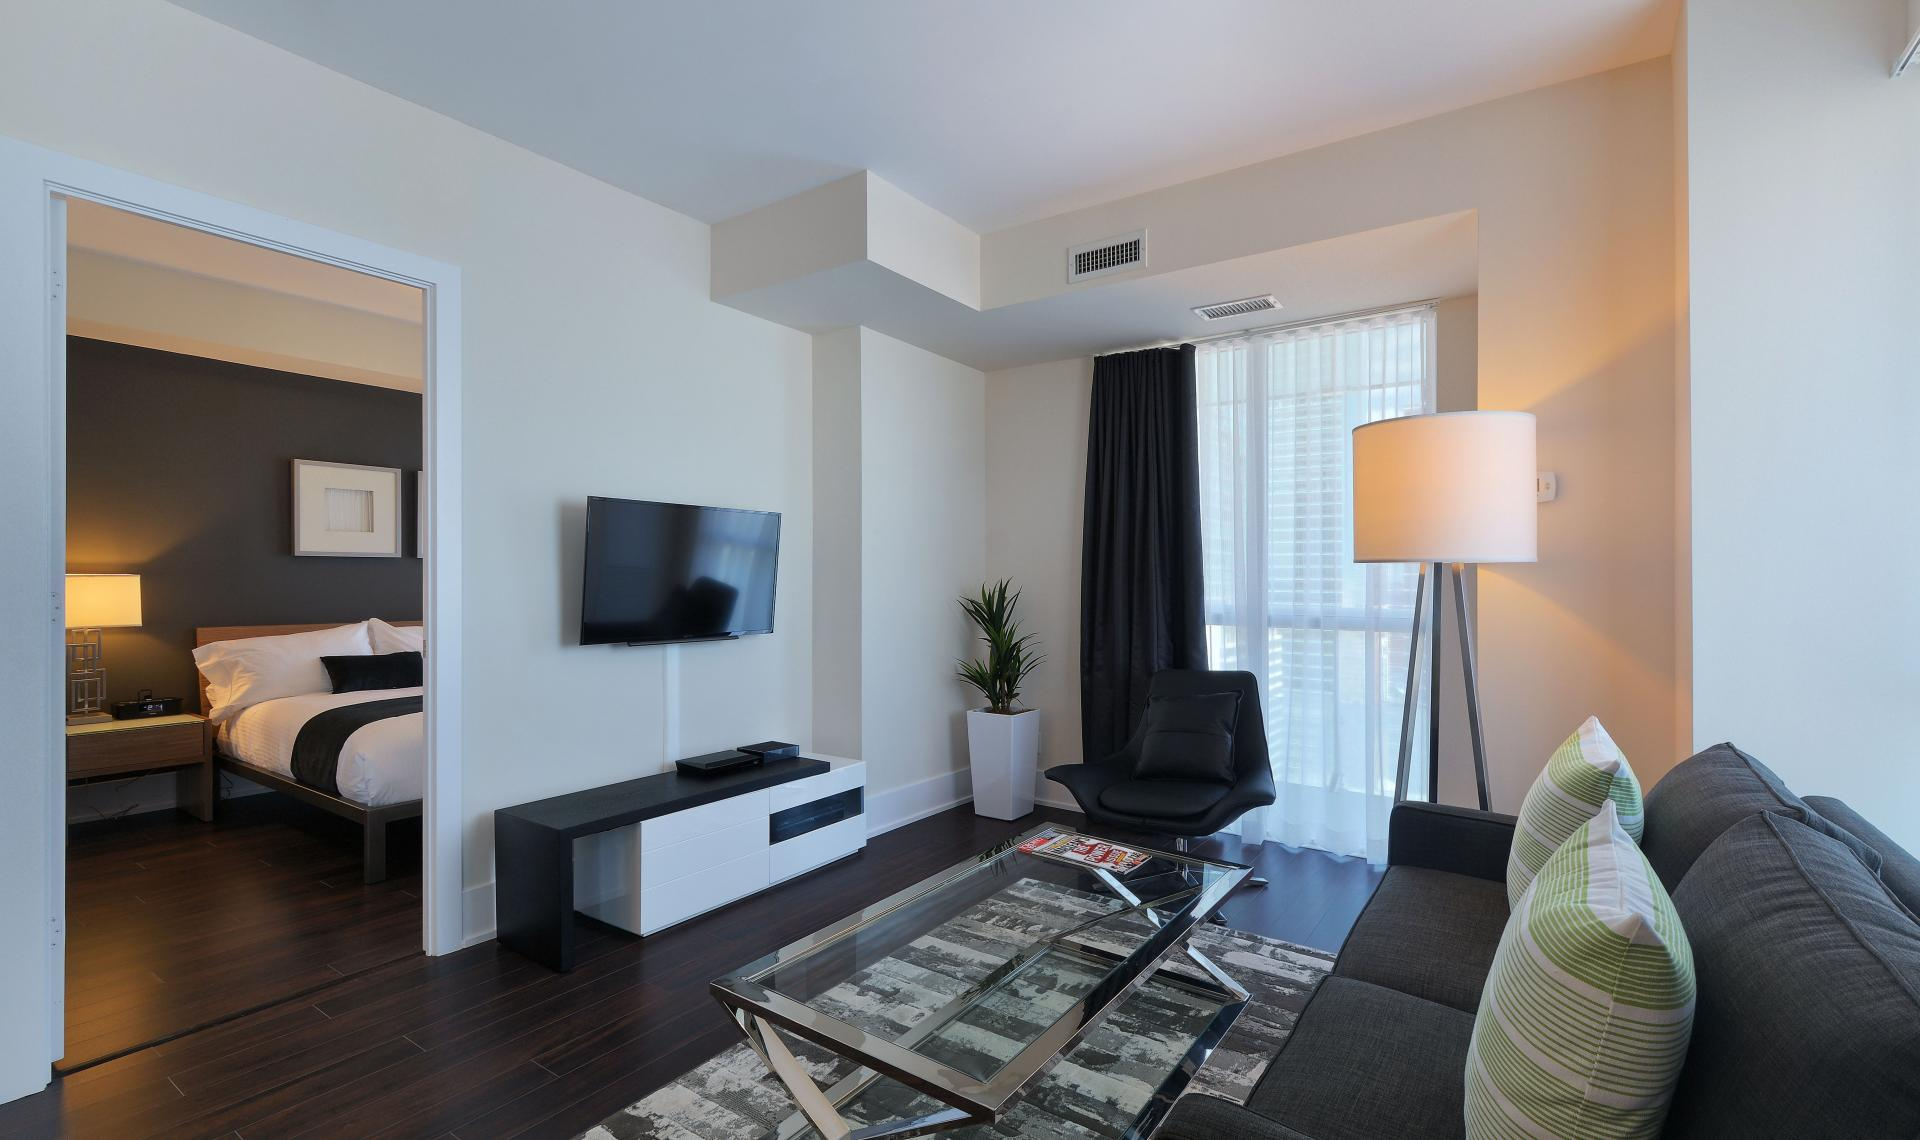 Lounge area at 300 Front Street West Delsuites - Citybase Apartments